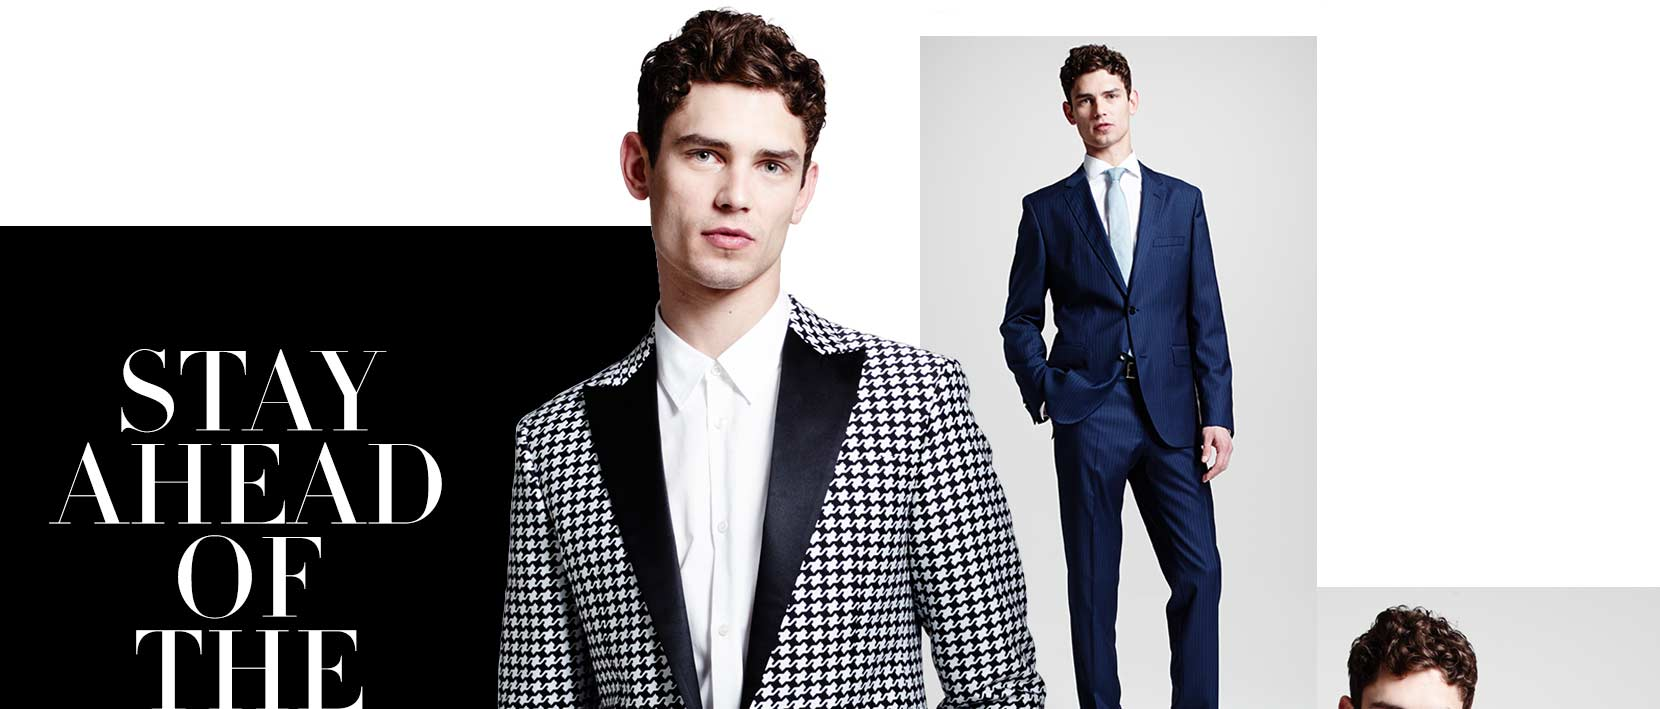 Stay ahead of the curve! The new men's prefall collections for work and weekends